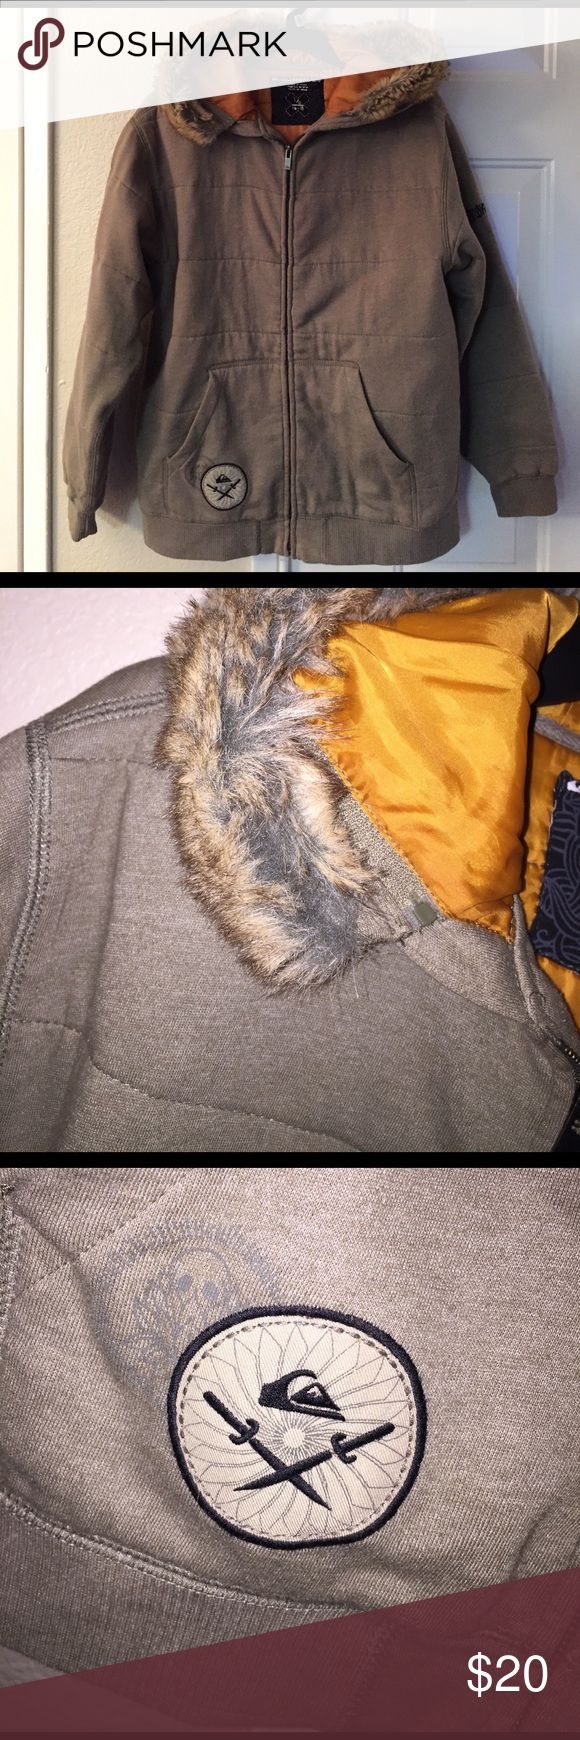 Quicksilver fur hooded coat Sz L juniors Quicksilver fur hooded coat Sz L juniors  - army green tan fur rust lining.  Good condition - small pilling under arms at wrists.  Price reflects pilling quicksilver Jackets & Coats Utility Jackets